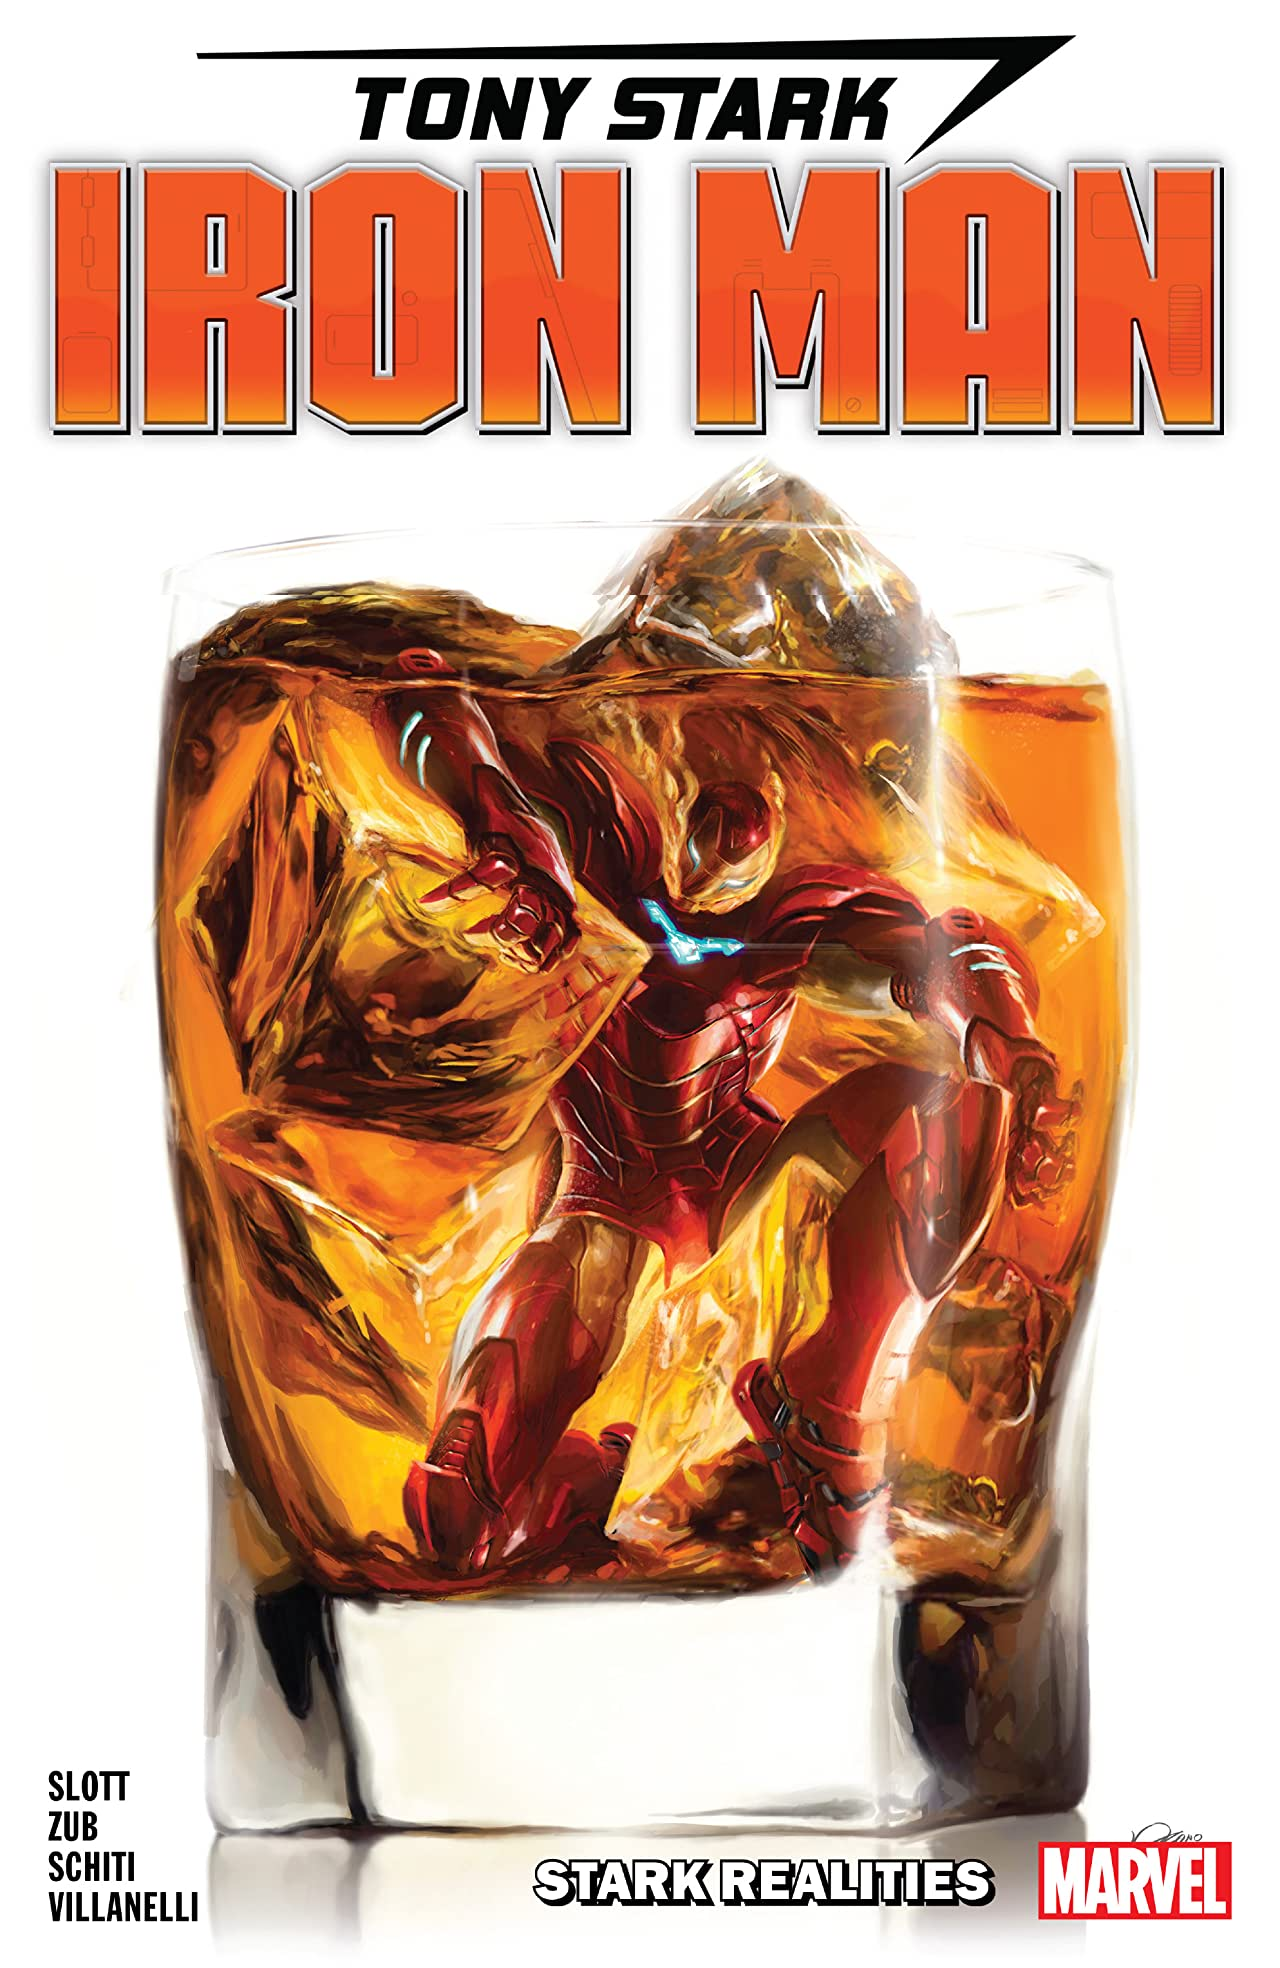 Tony Stark: Iron Man Tome 2: Stark Realities